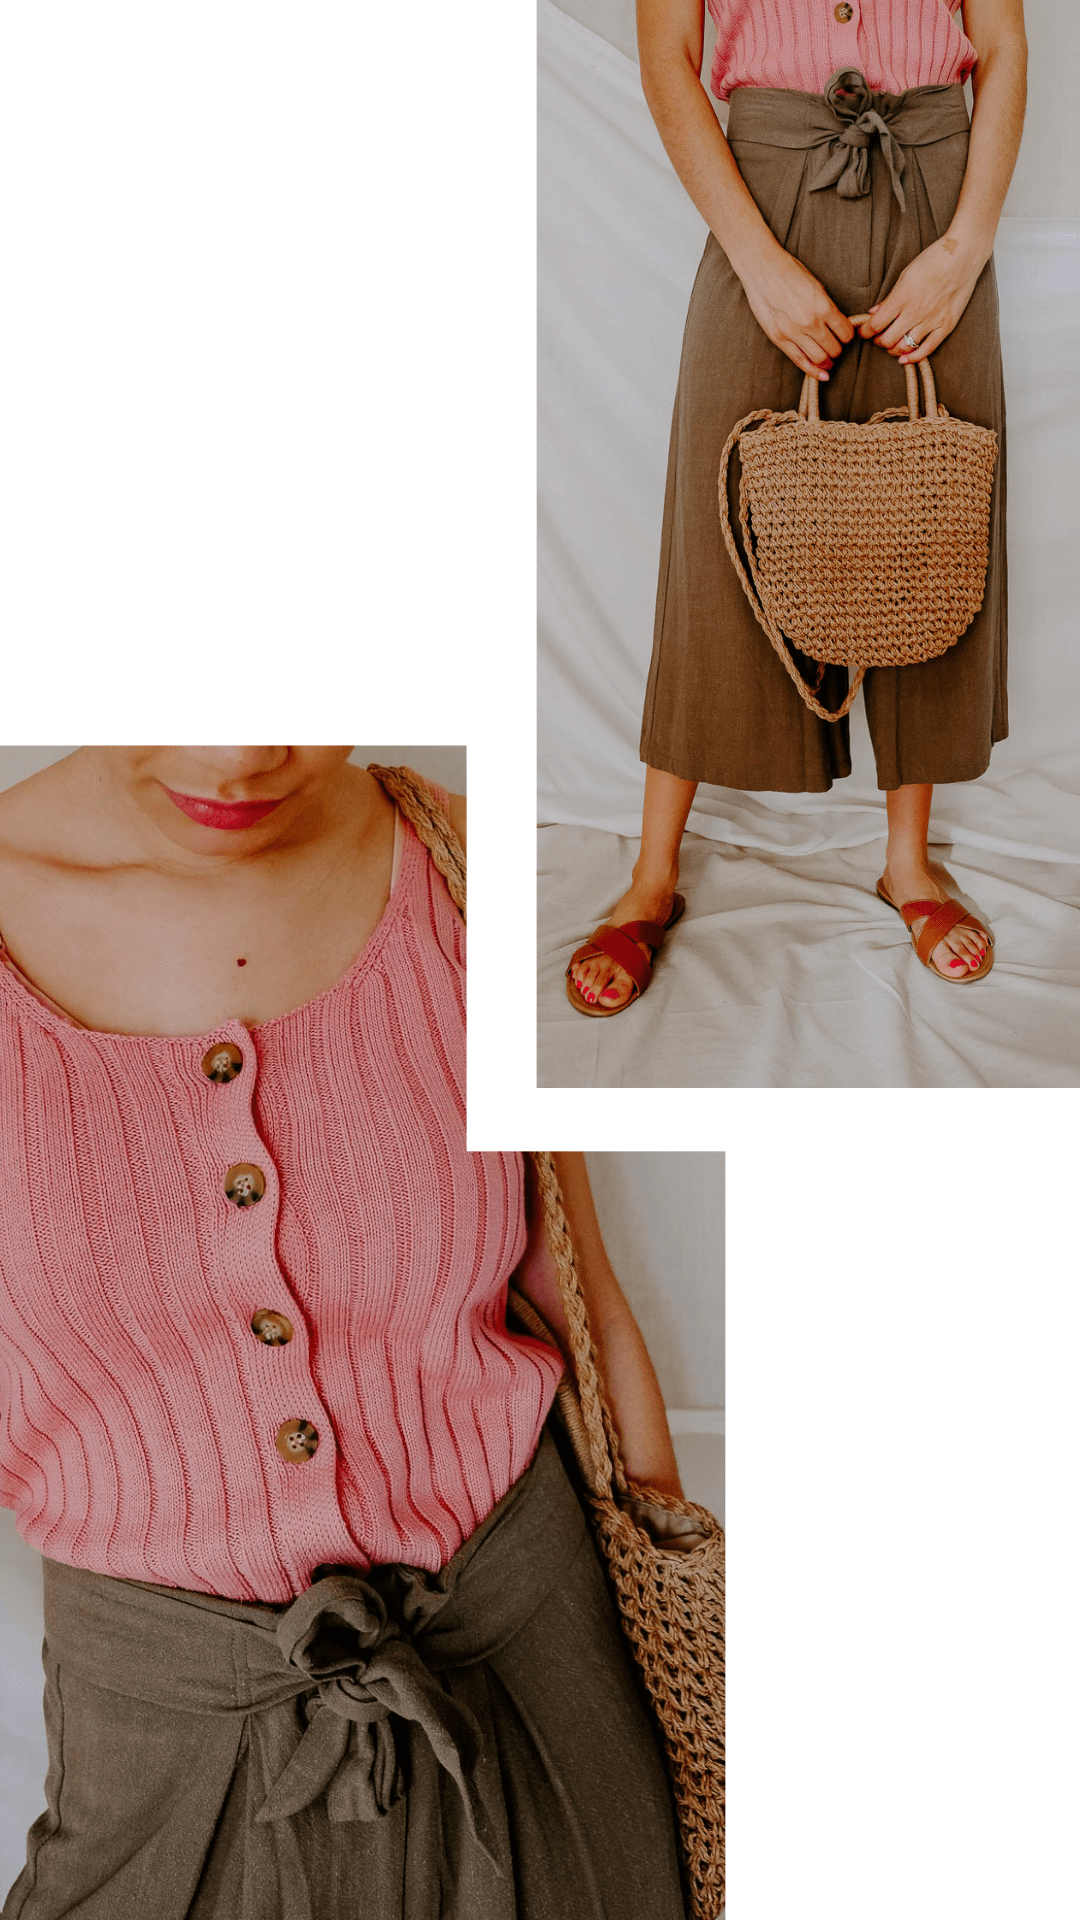 Does the warmer weather inspire you to try out some chic color combos this season? Here are 4 chic color combos to add to your spring and summer outfits! I love this pink and olive green color combo.